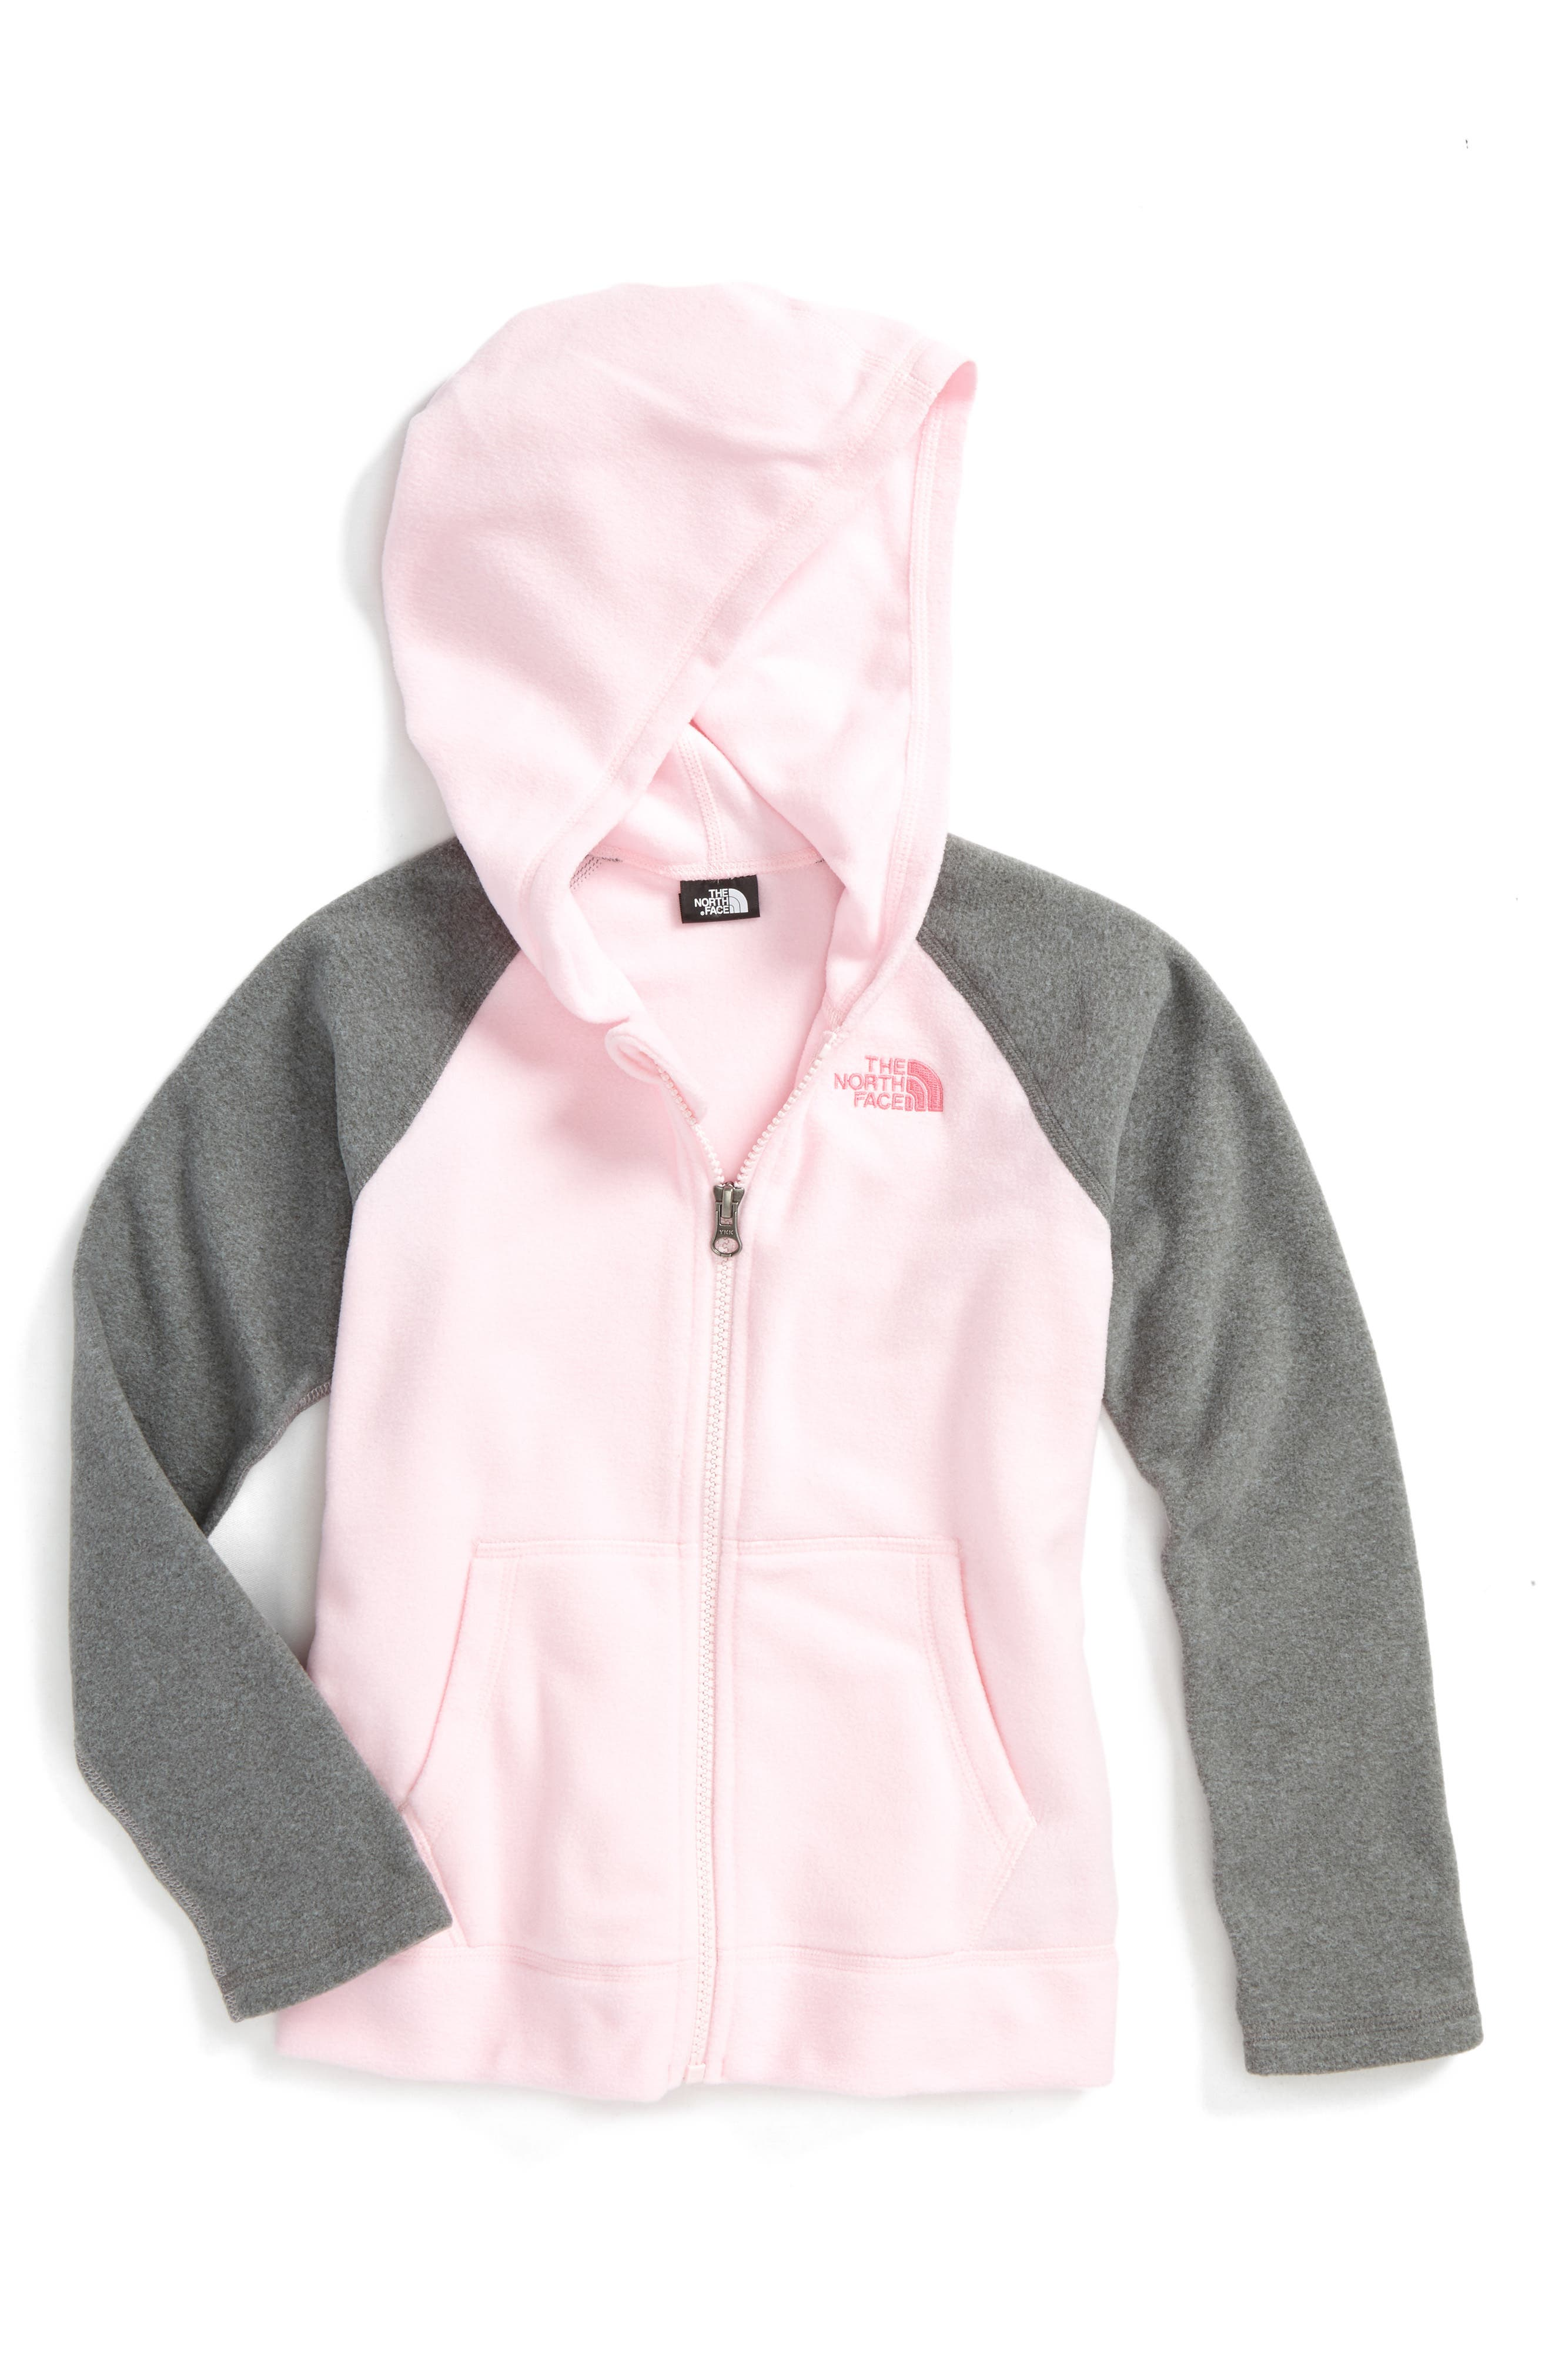 Alternate Image 1 Selected - The North Face Glacier Full Zip Hoodie (Toddler Girls & Little Girls)